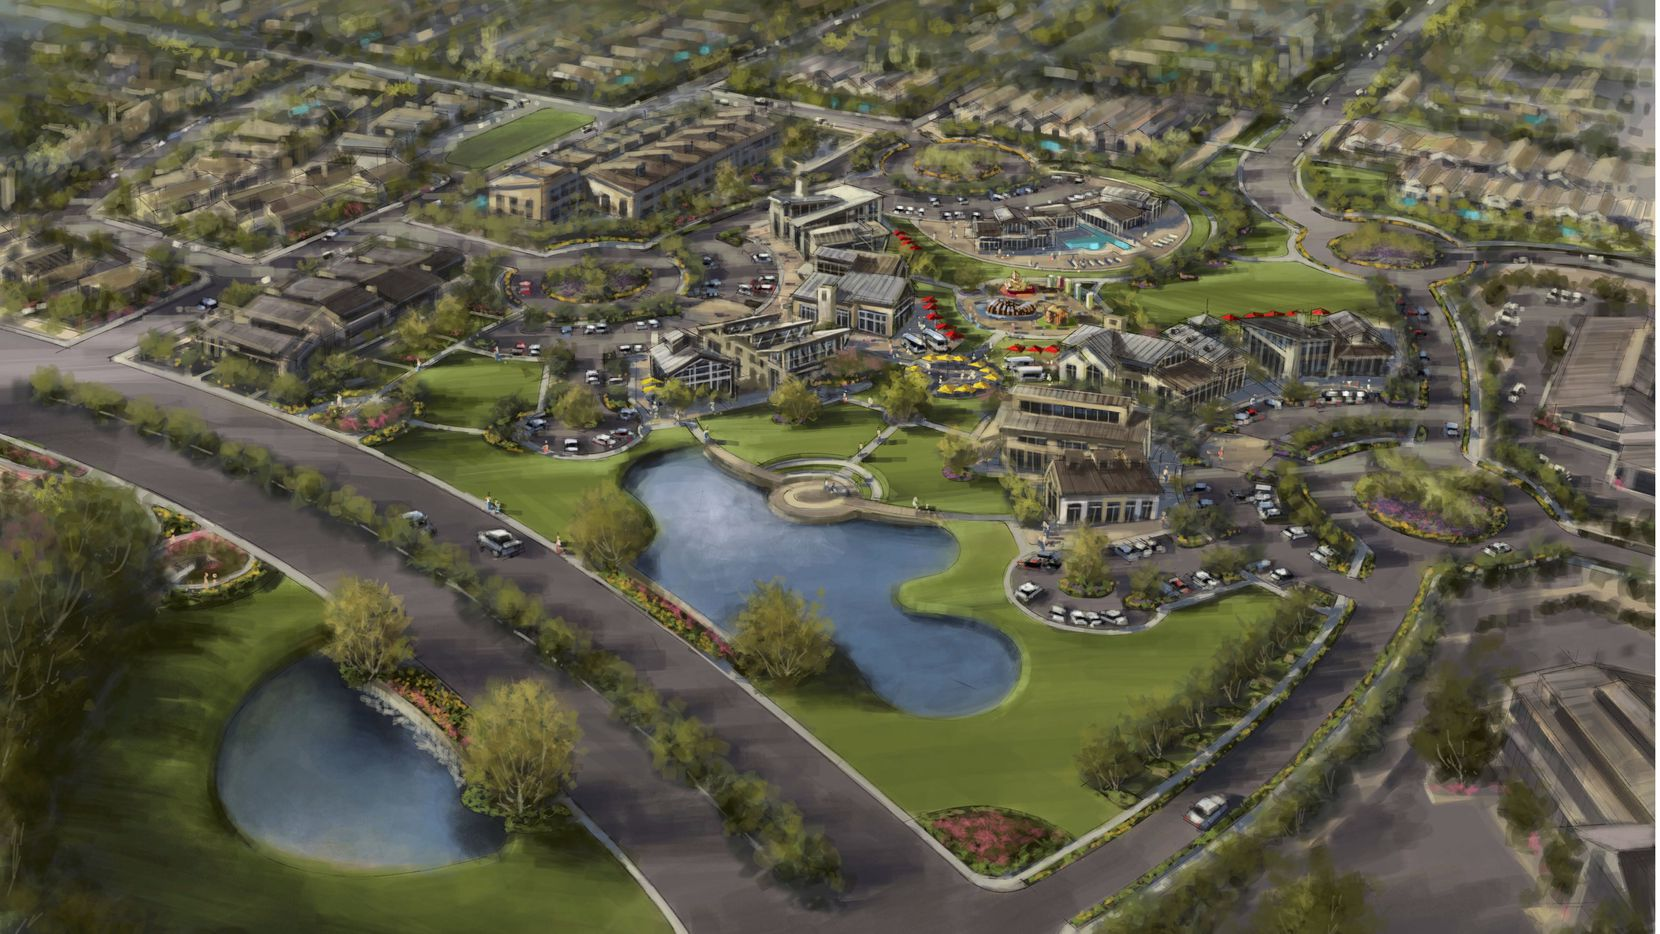 The 2,500-acre mixed-use Honeycreek development is estimated to cost $300 million.